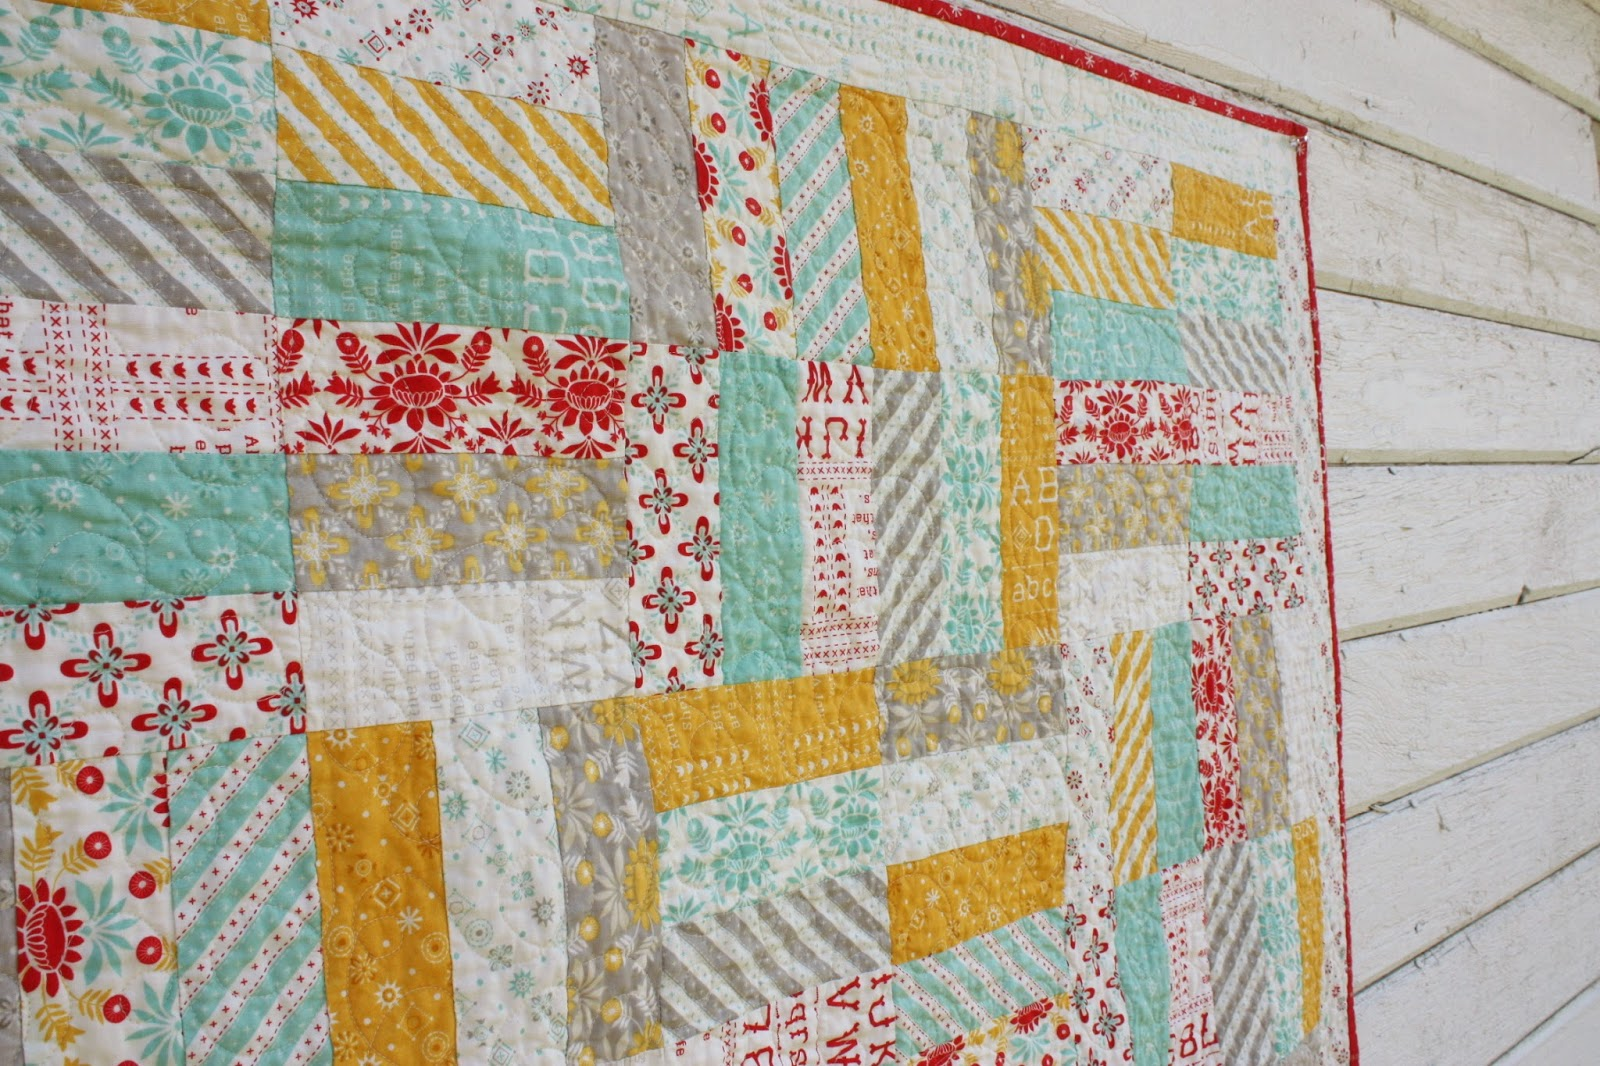 Easy Baby Jelly Roll Quit Pattern - Diary of a Quilter - a quilt blog : jelly roll quilt books - Adamdwight.com